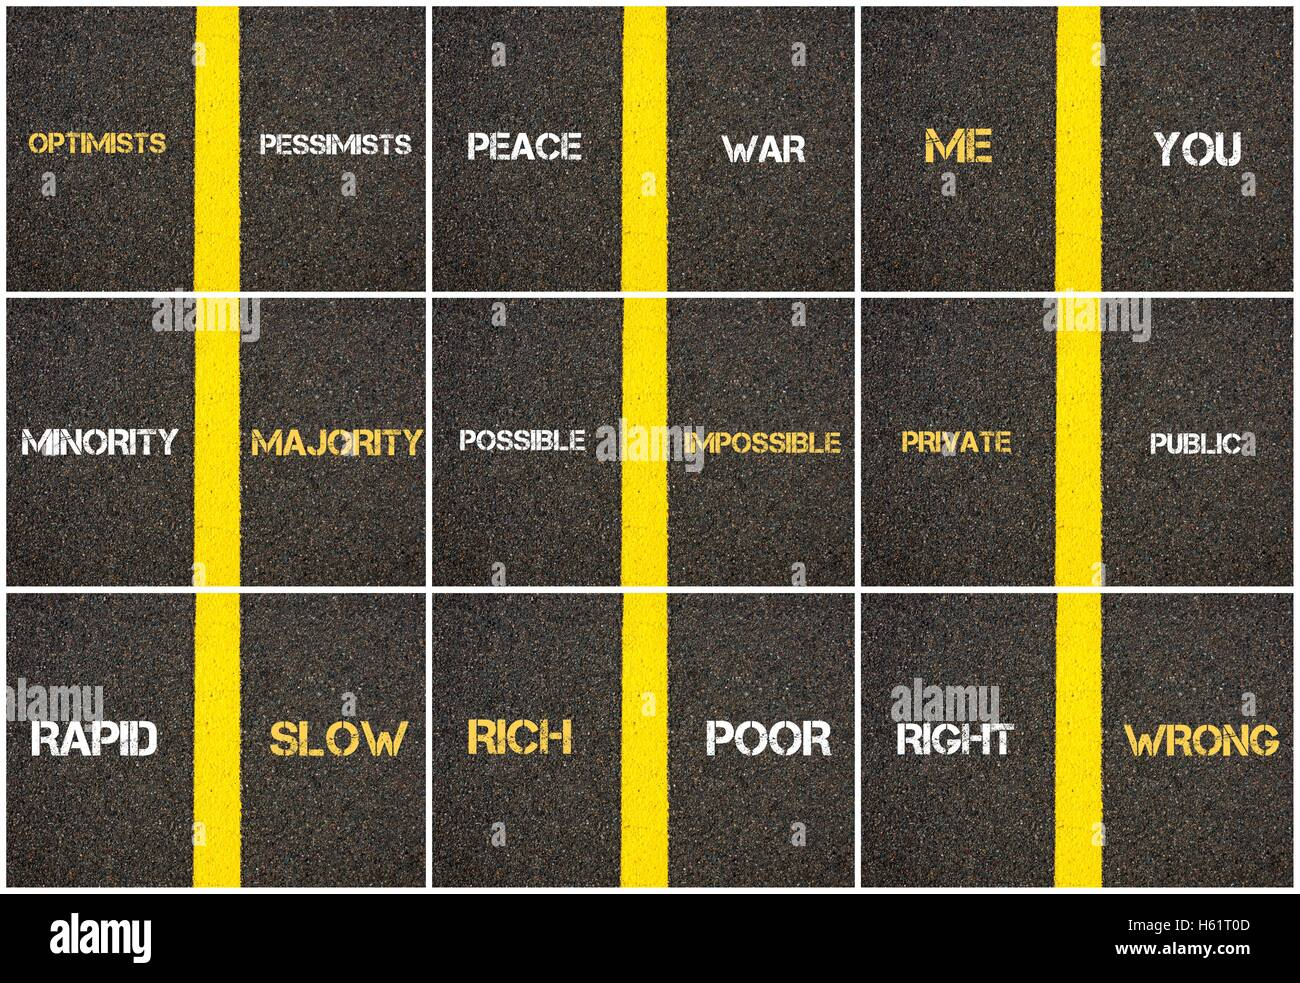 Photo collage of antonym concepts written over tarmac, road marking yellow paint separating line between words - Stock Image